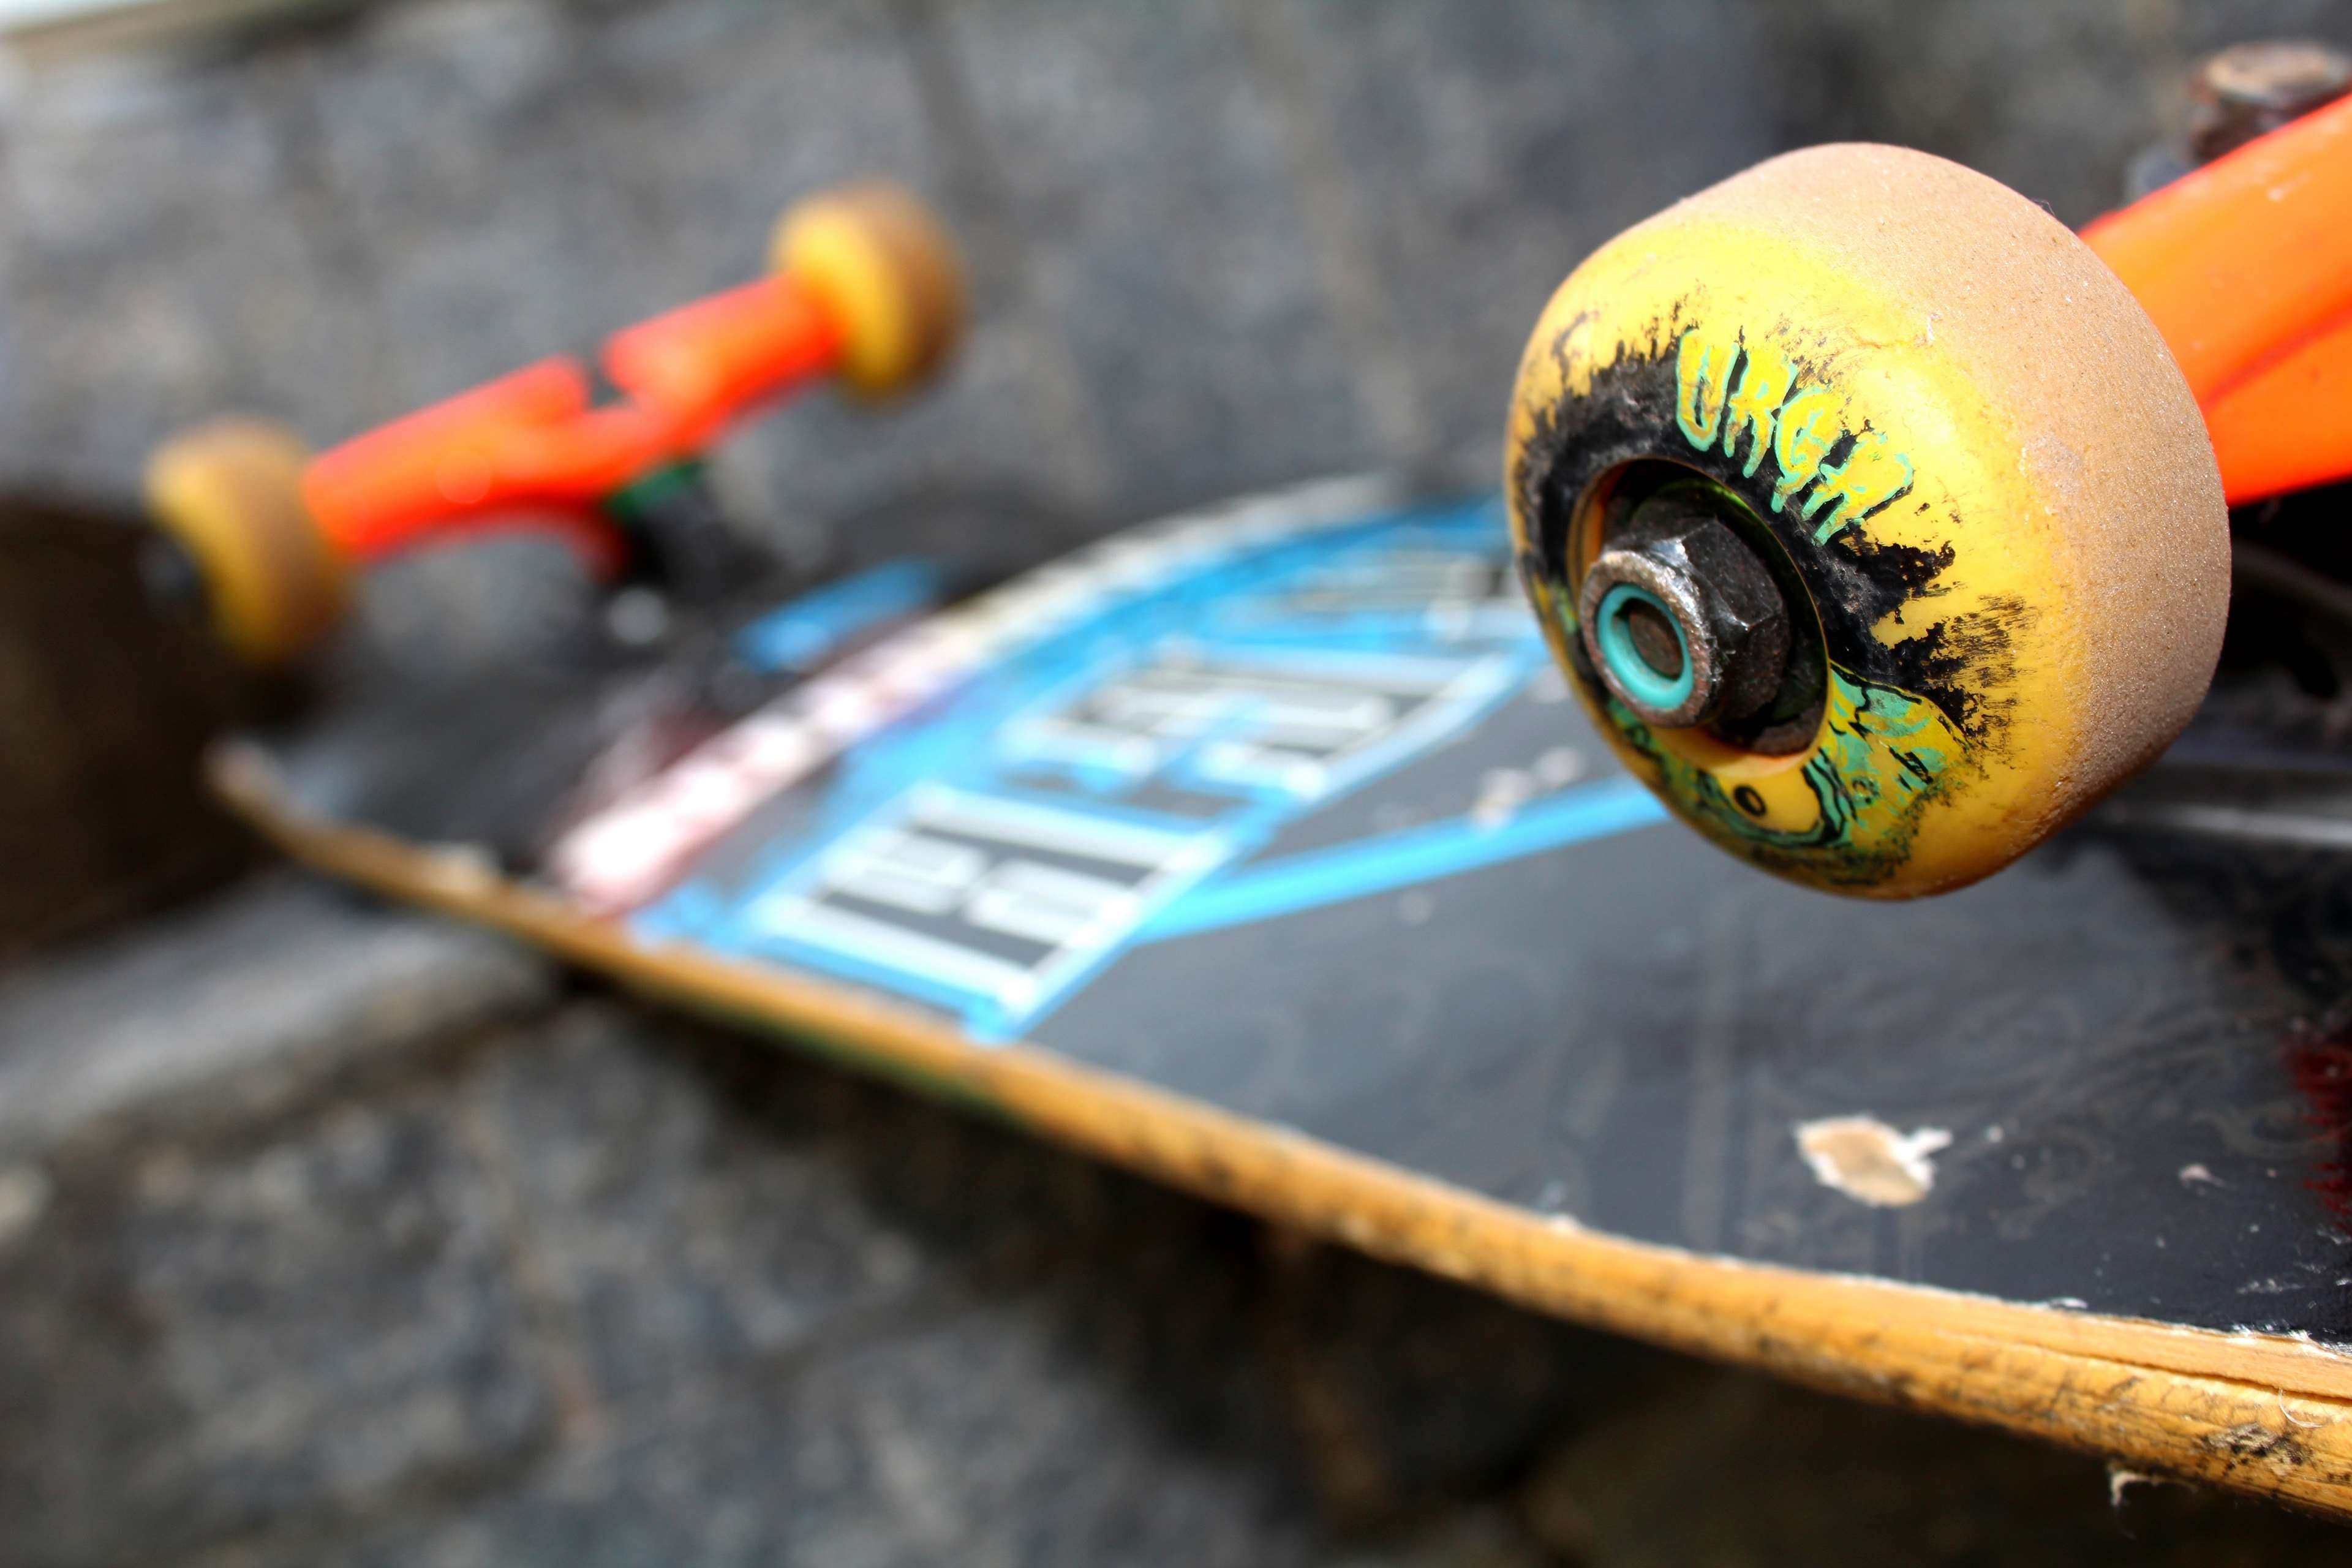 3062843 lucas soares, skate, skateboard, wallpaper, wheel 4k